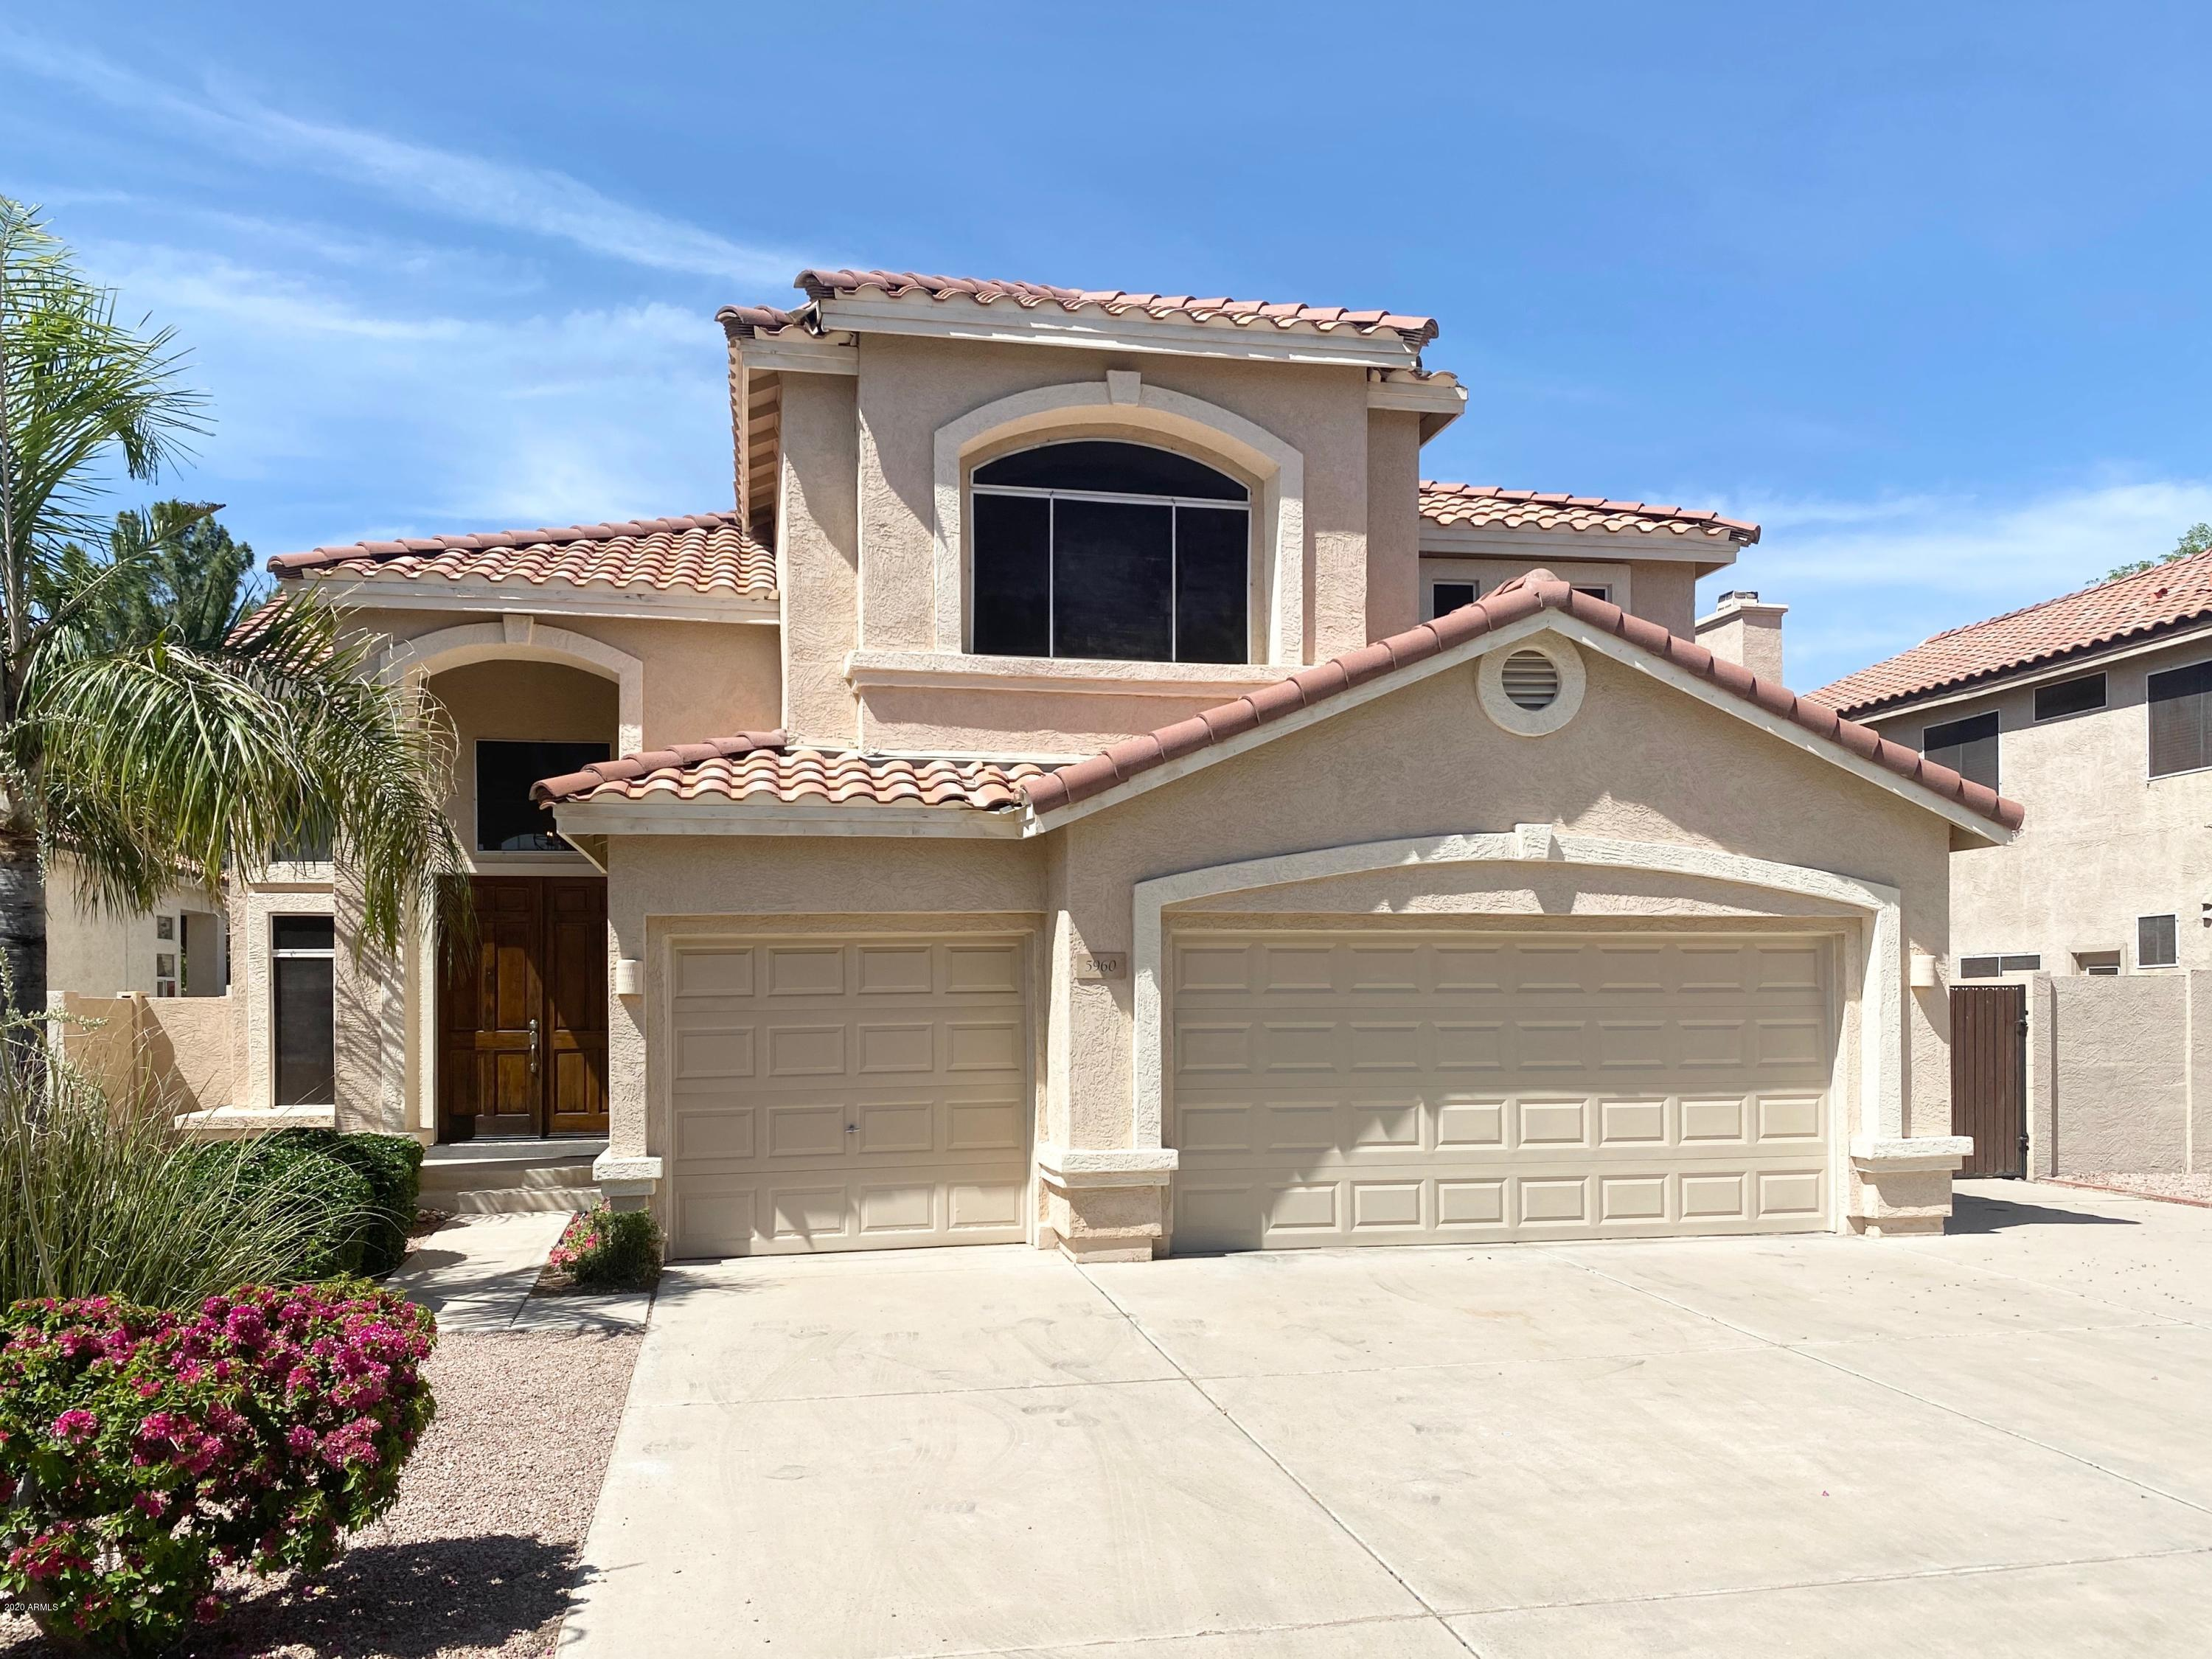 Photo of 5960 W LONE CACTUS Drive, Glendale, AZ 85308